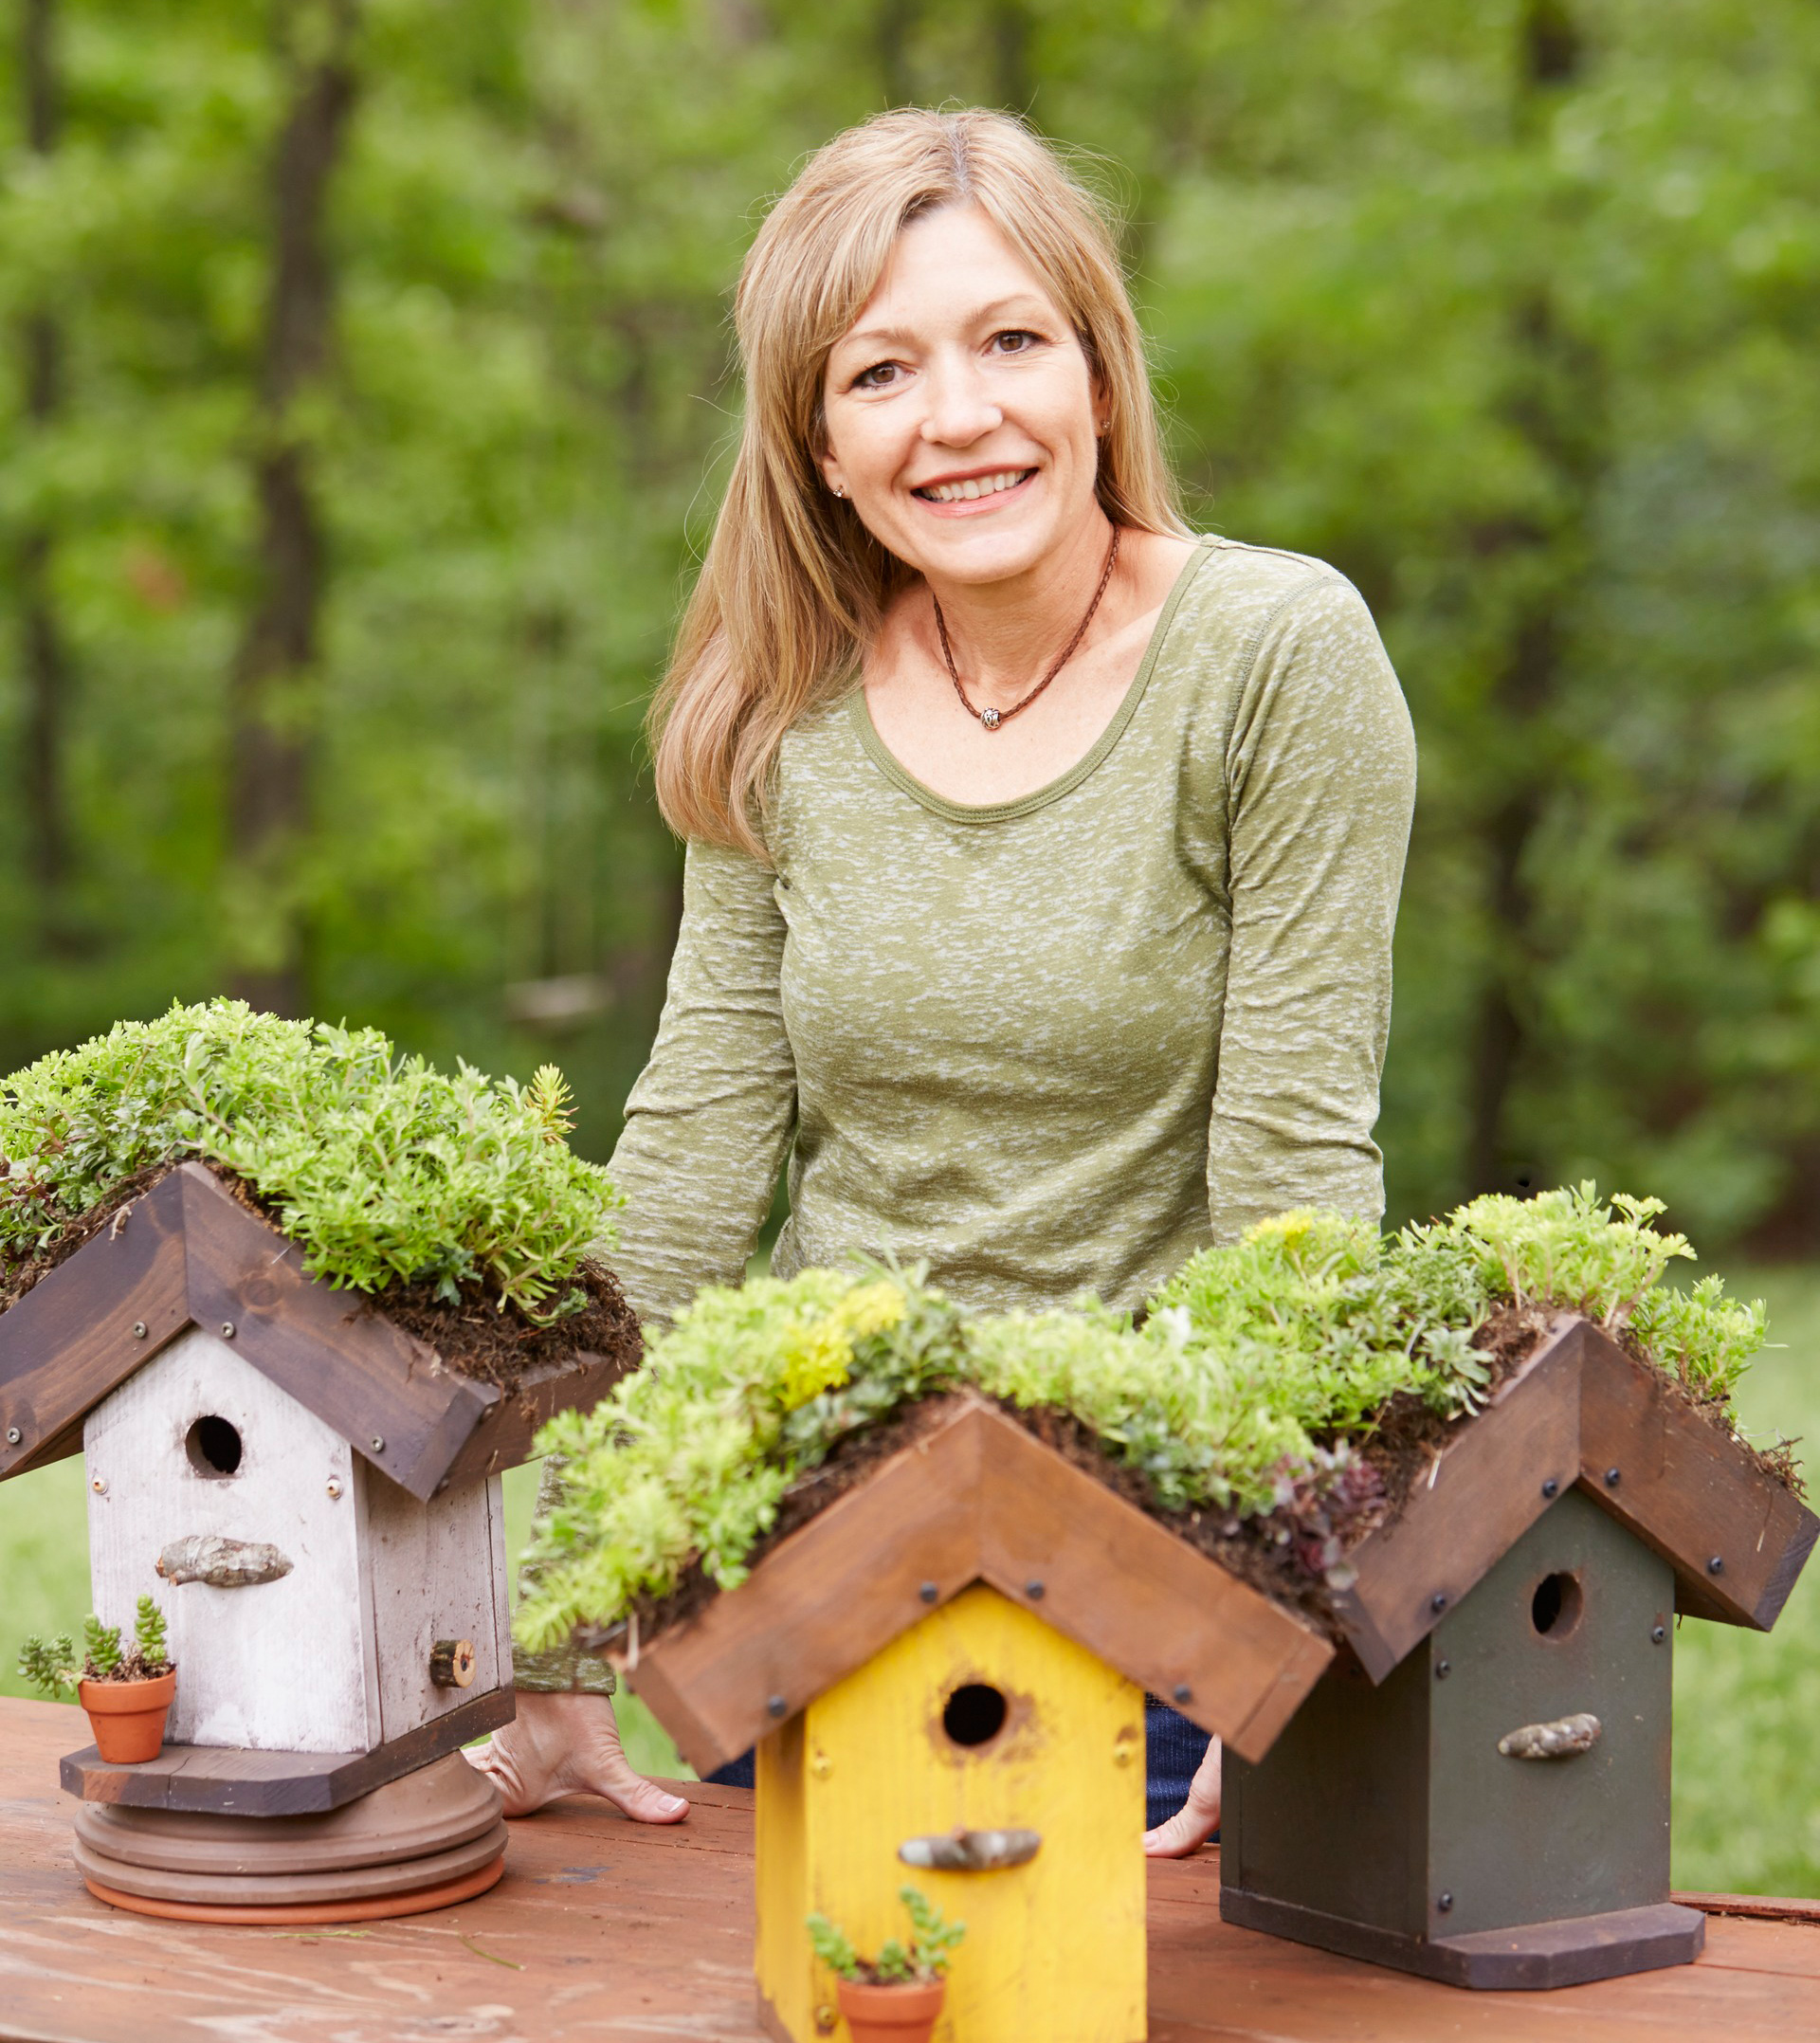 The business behind the birdhouse